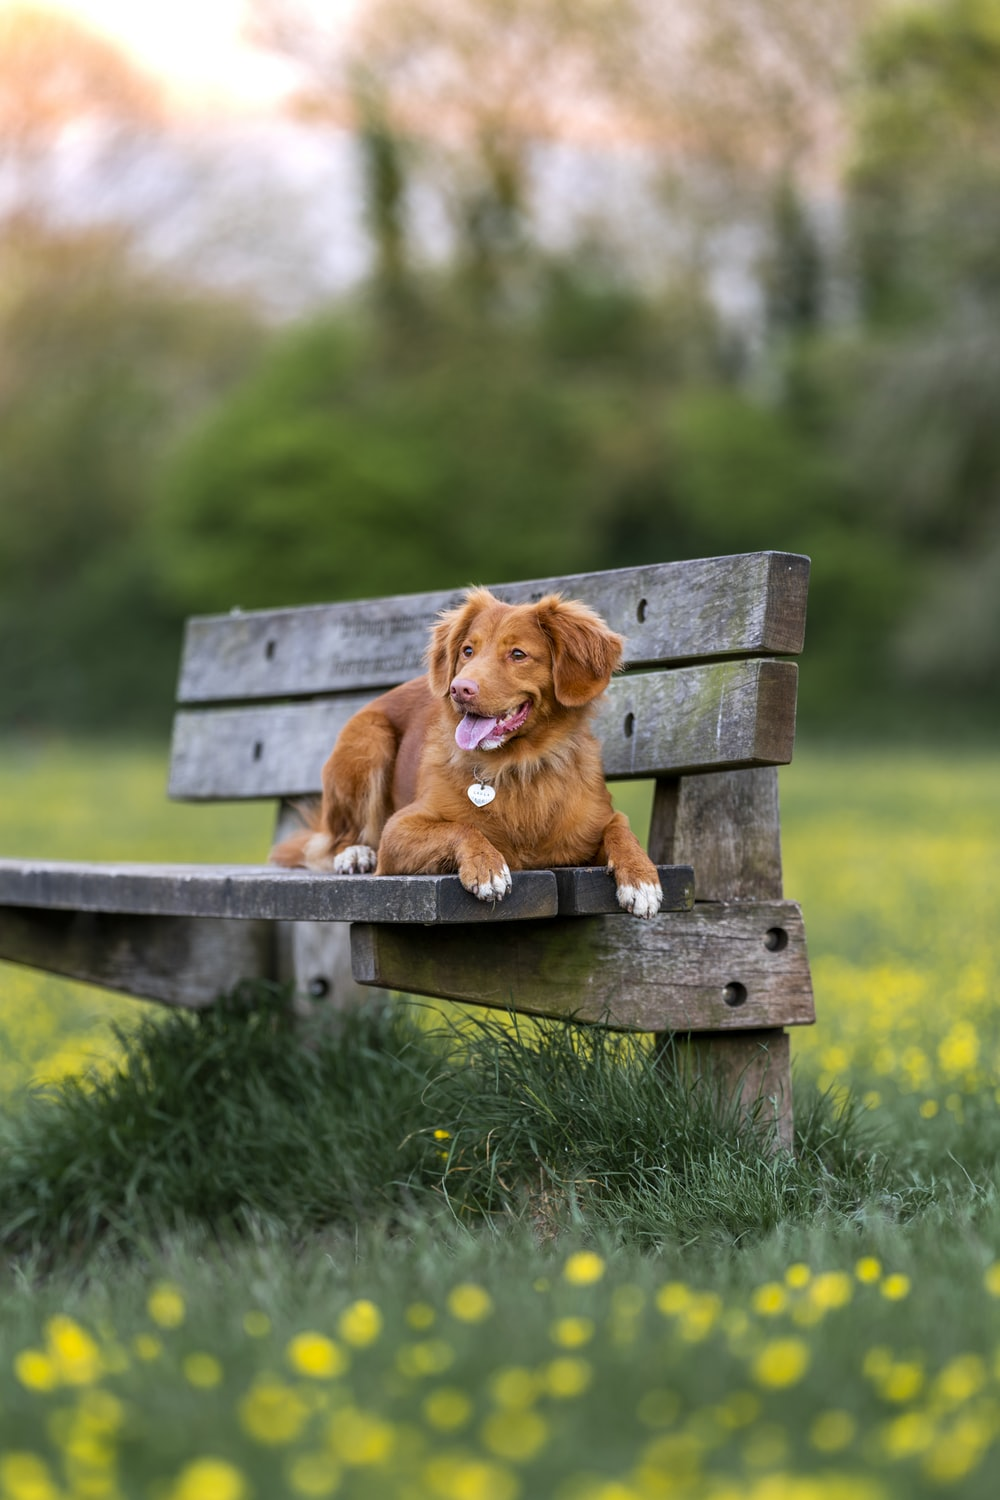 brown short coated dog on brown wooden bench during daytime